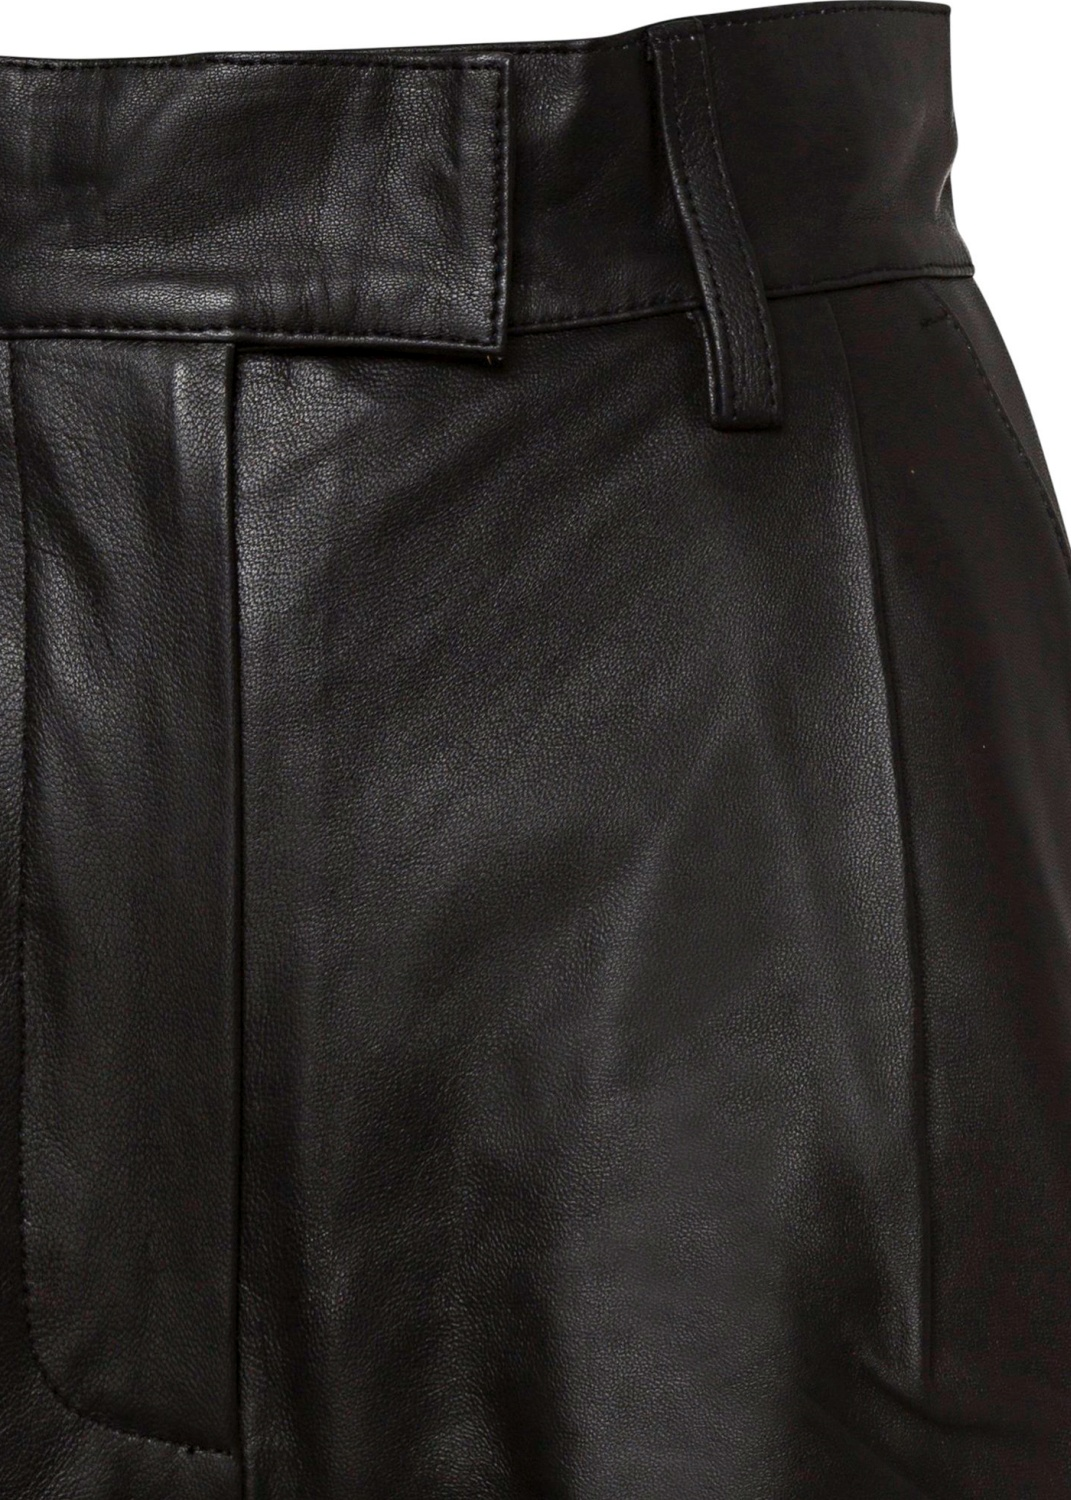 Paola Shorts Leather image number 2